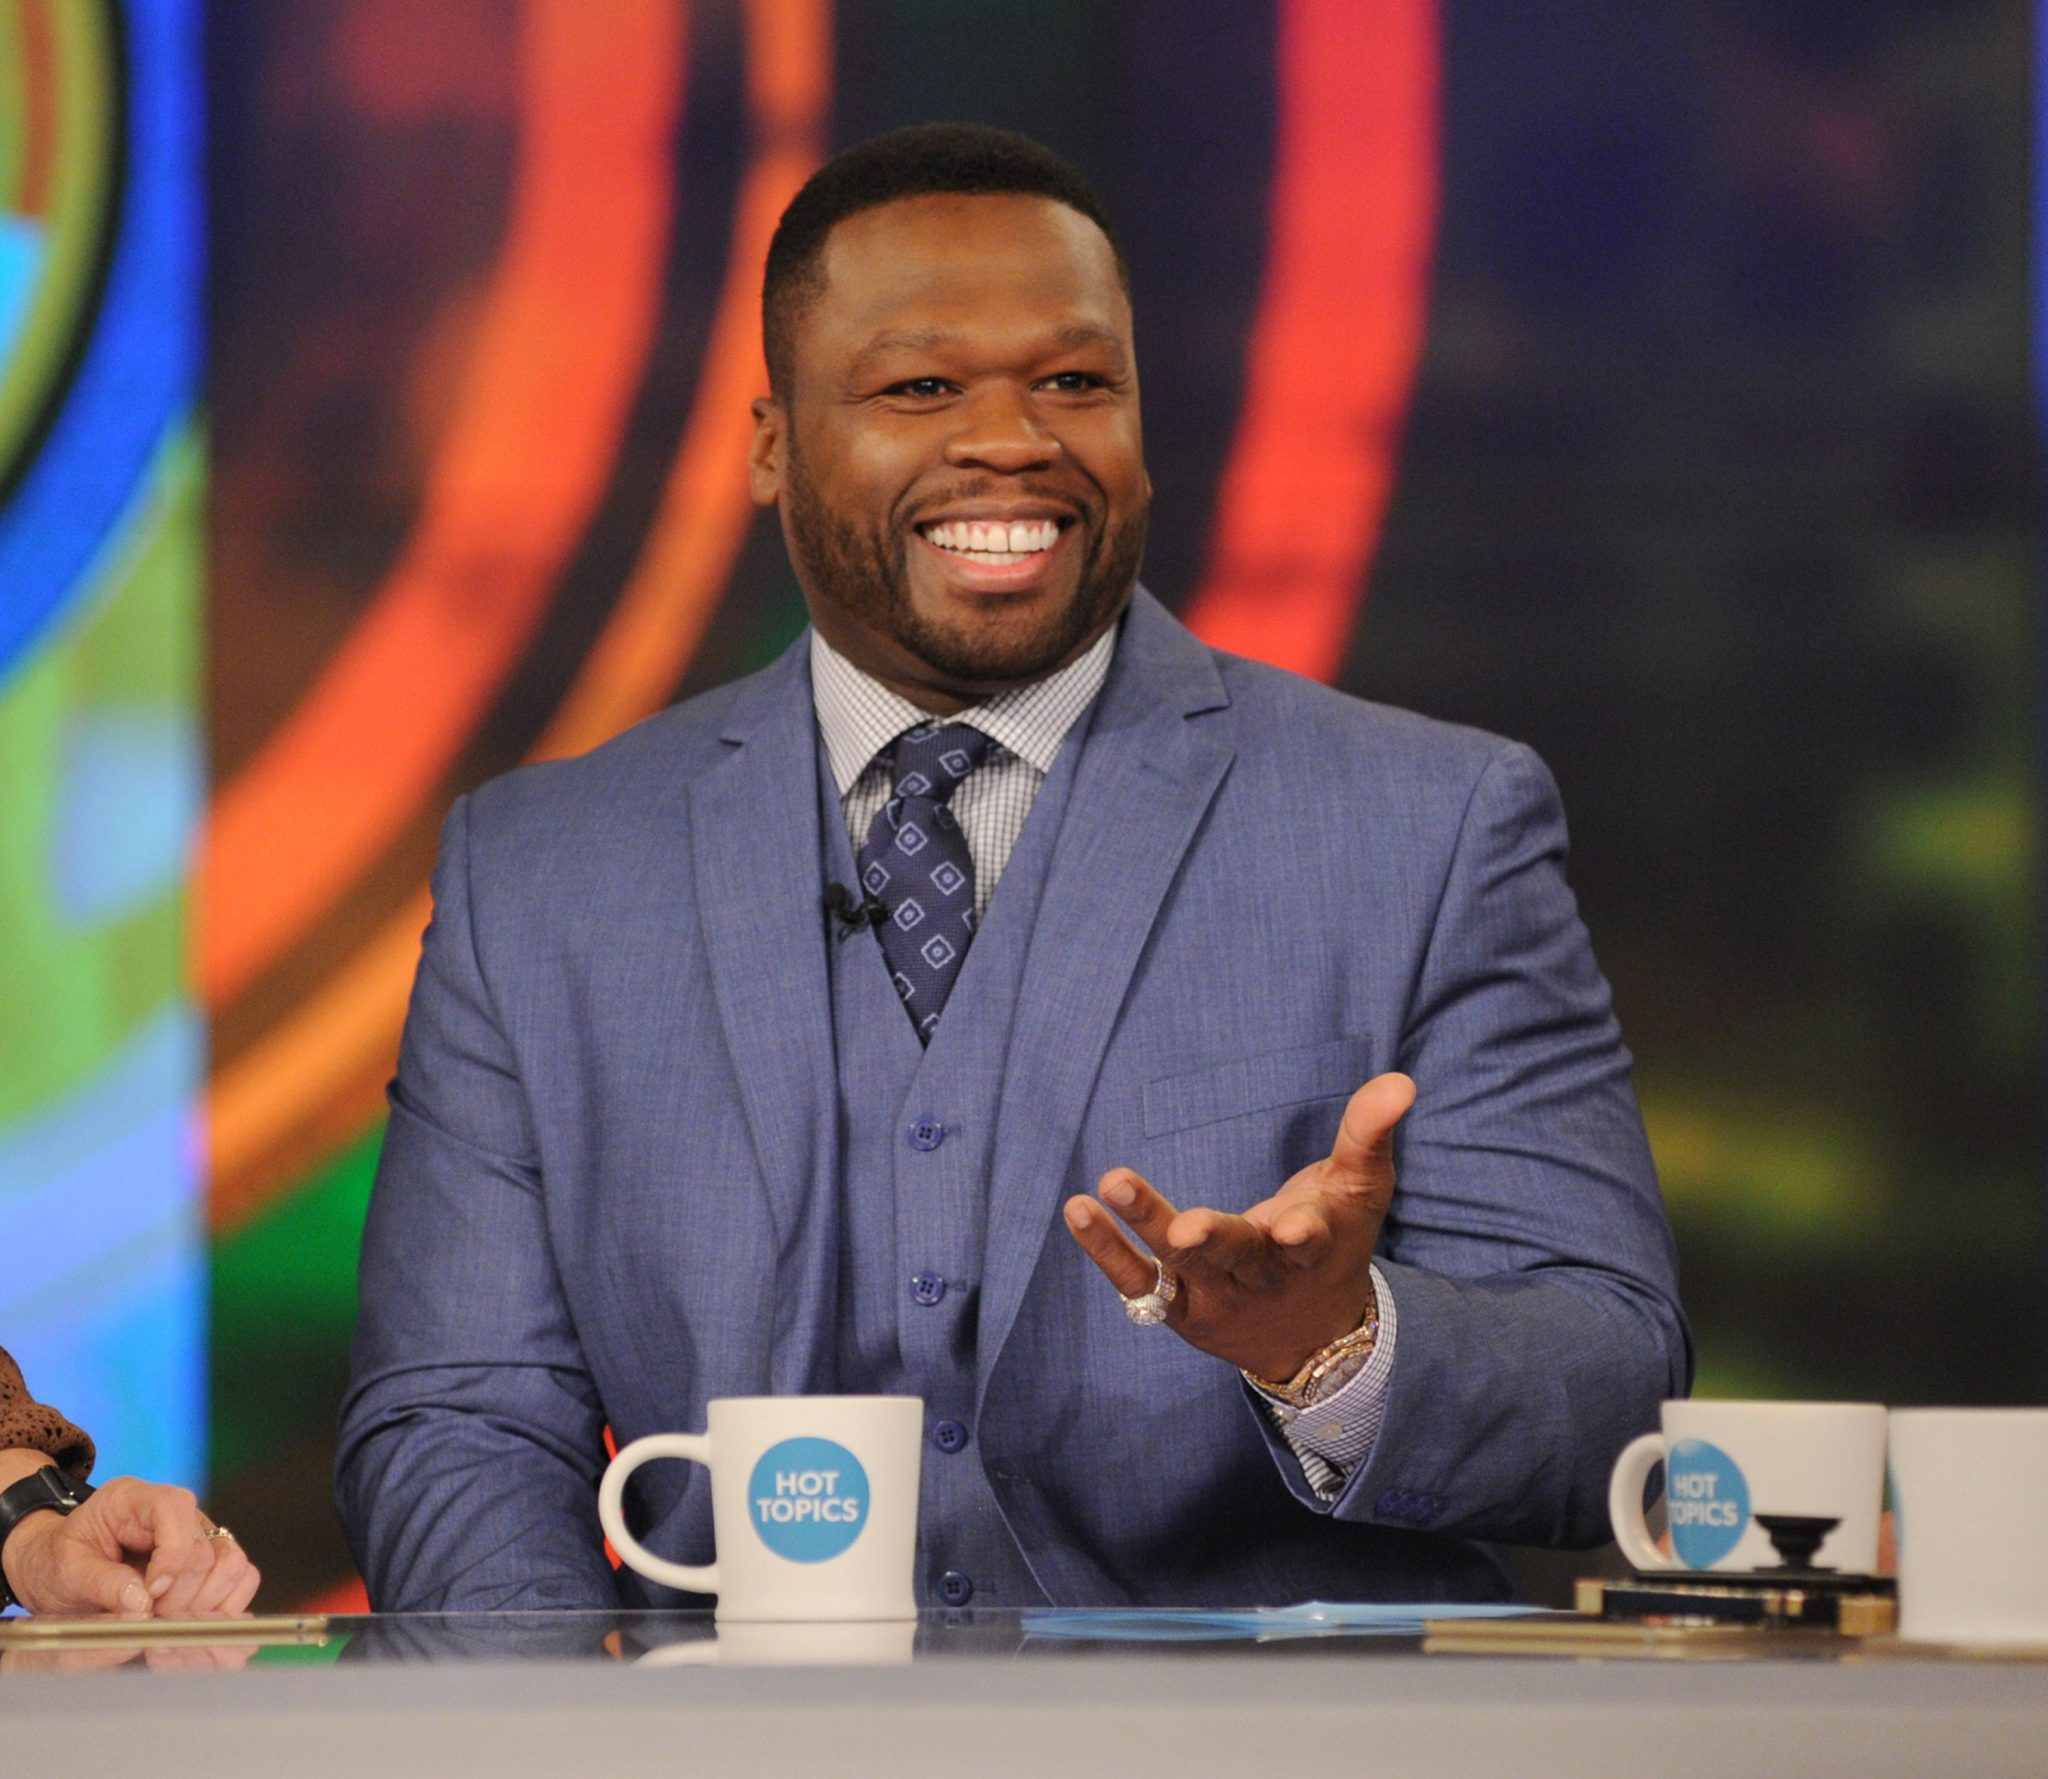 In Case You Missed It: 50 Cent On The View